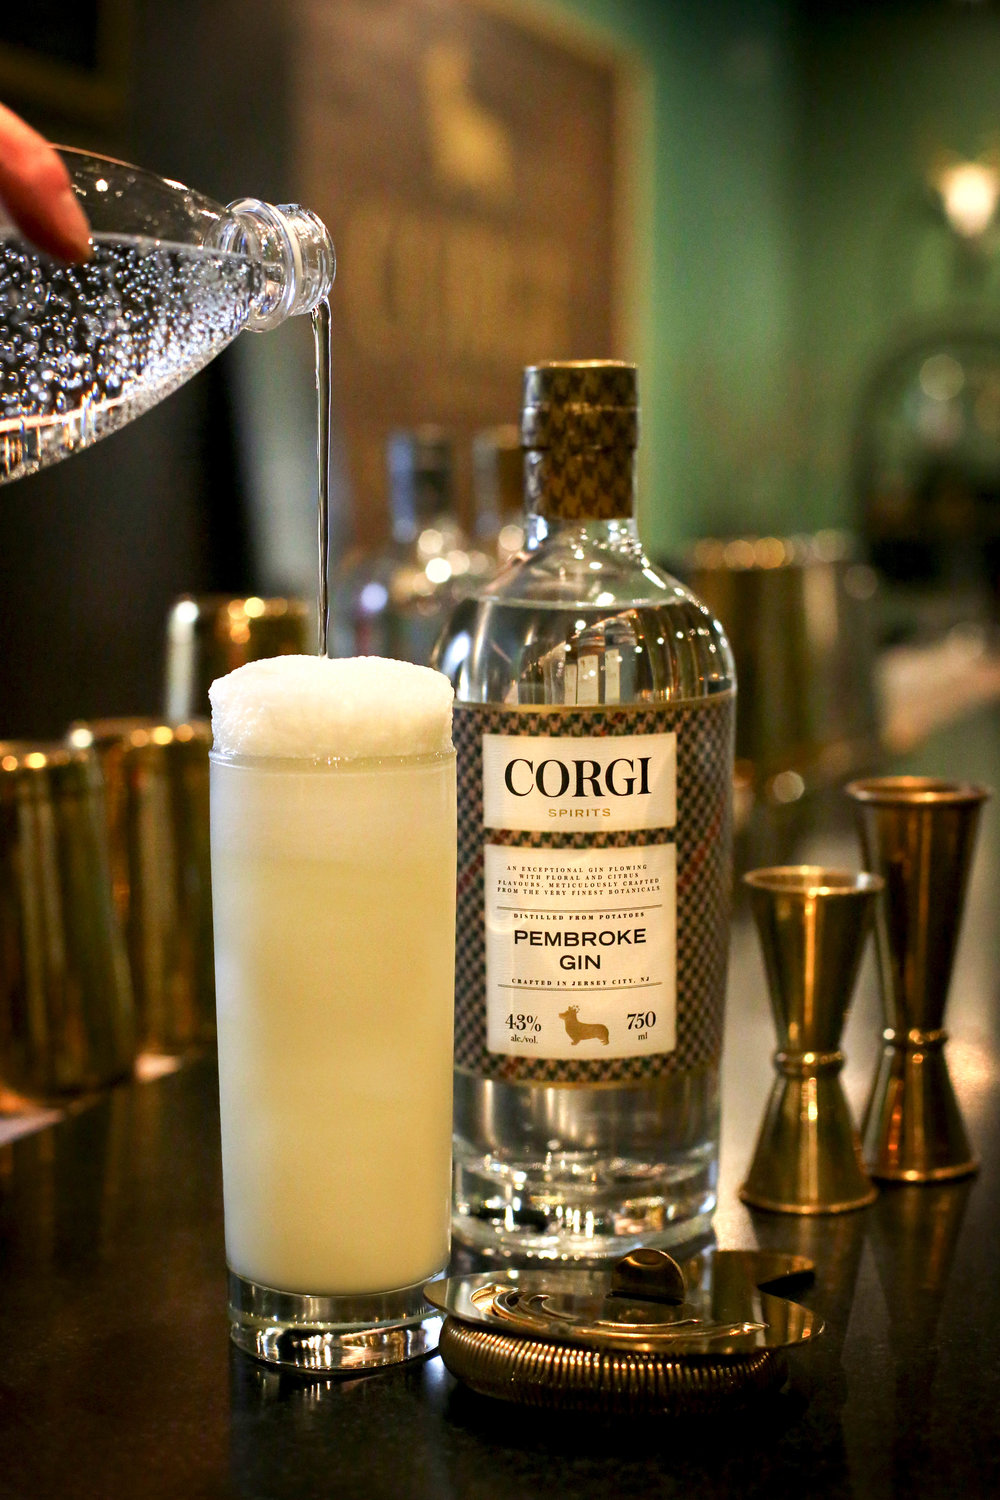 RAMOS GIN FIZZ   2oz Corgi Spirits Pembroke  1 dash orange blossom water  0.5oz 1/2 & 1/2  0.5oz lemon juice  0.5oz lime juice  0.5oz simple syrup  1 egg white  1oz seltzer water    In a shaker combine all ingredients excluding the seltzer. Vigorously dry shake (no ice) for 30 seconds. Add ice and vigorously shake for 30 more seconds. Strain cocktail into glass and slowly pour the seltzer water into the mixing glass to release the remaining froth. Gently ease the seltzer water/froth mixture onto the top of the drink and serve.